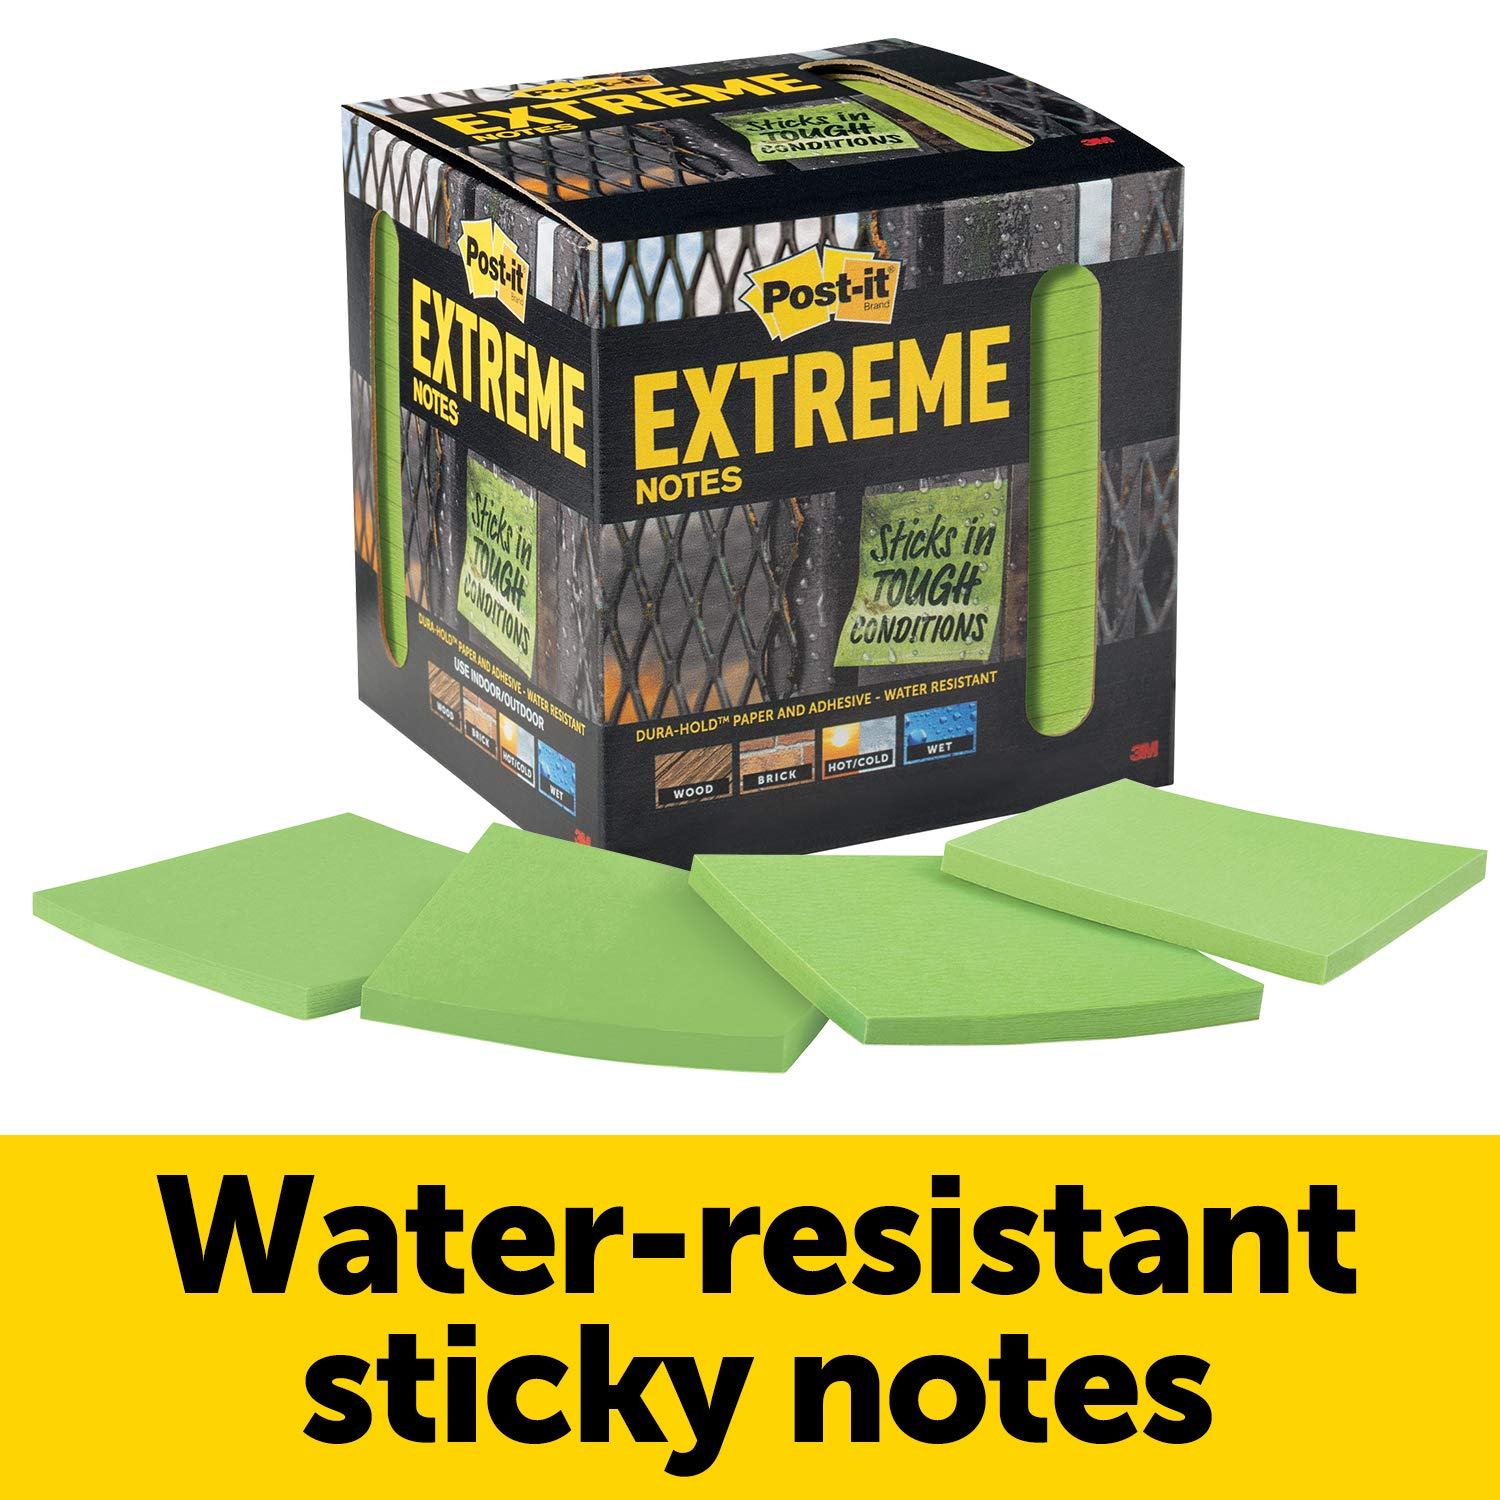 Post-it Extreme Notes, Green, Great for Tough Conditions, Stop the Re-Work, Recyclable Box, 3 in x 3 in, 12 Pads/Pack, 45 Sheets/Pad (EXTRM33-12TRYG)